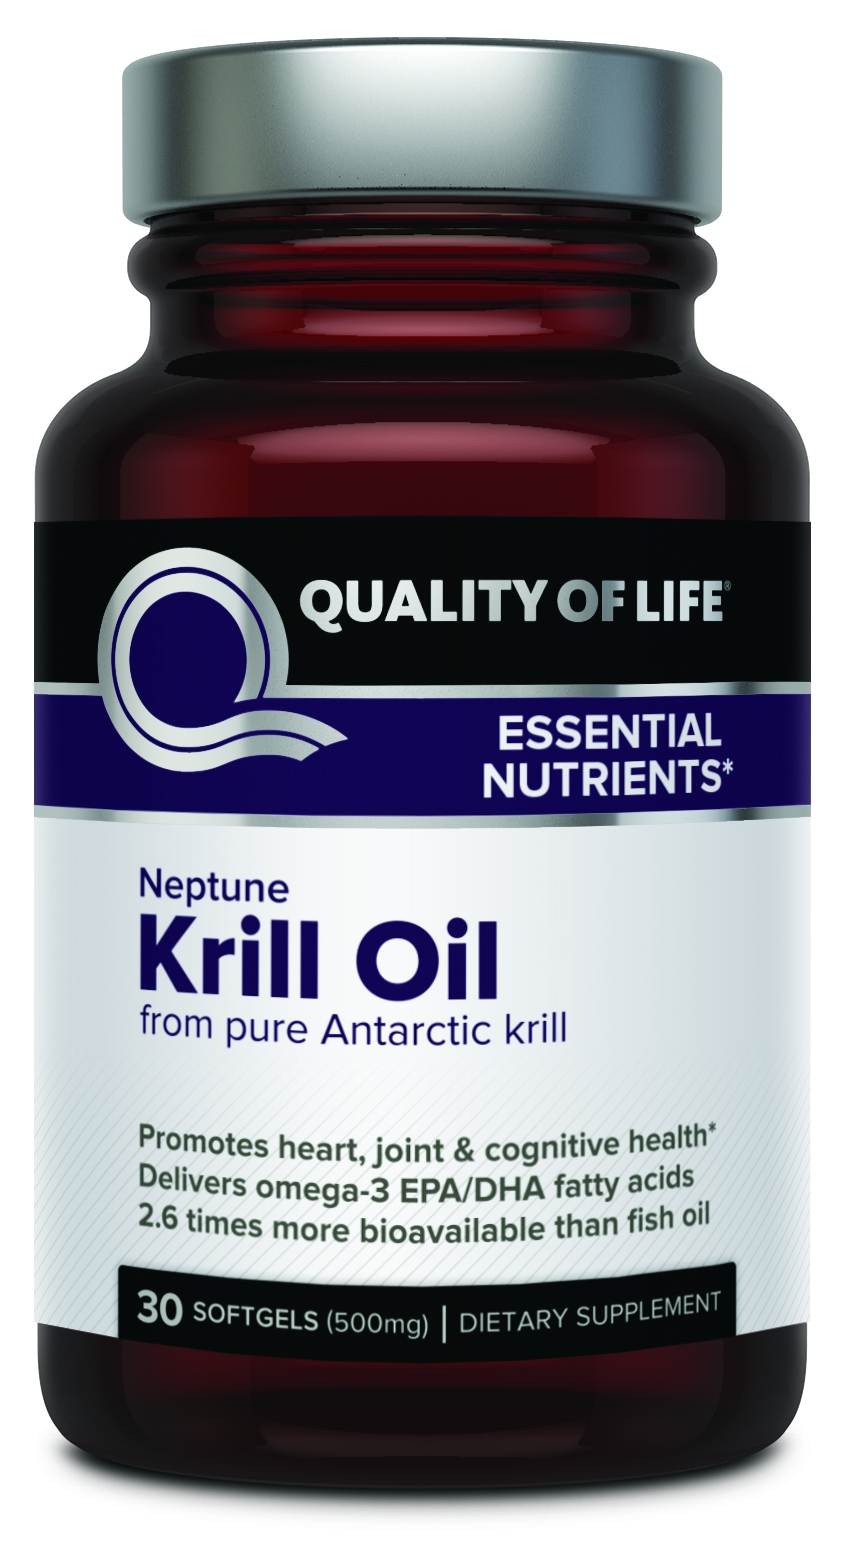 Neptune Krill Oil 500 mg 30 sgels by Quality of Life Labs